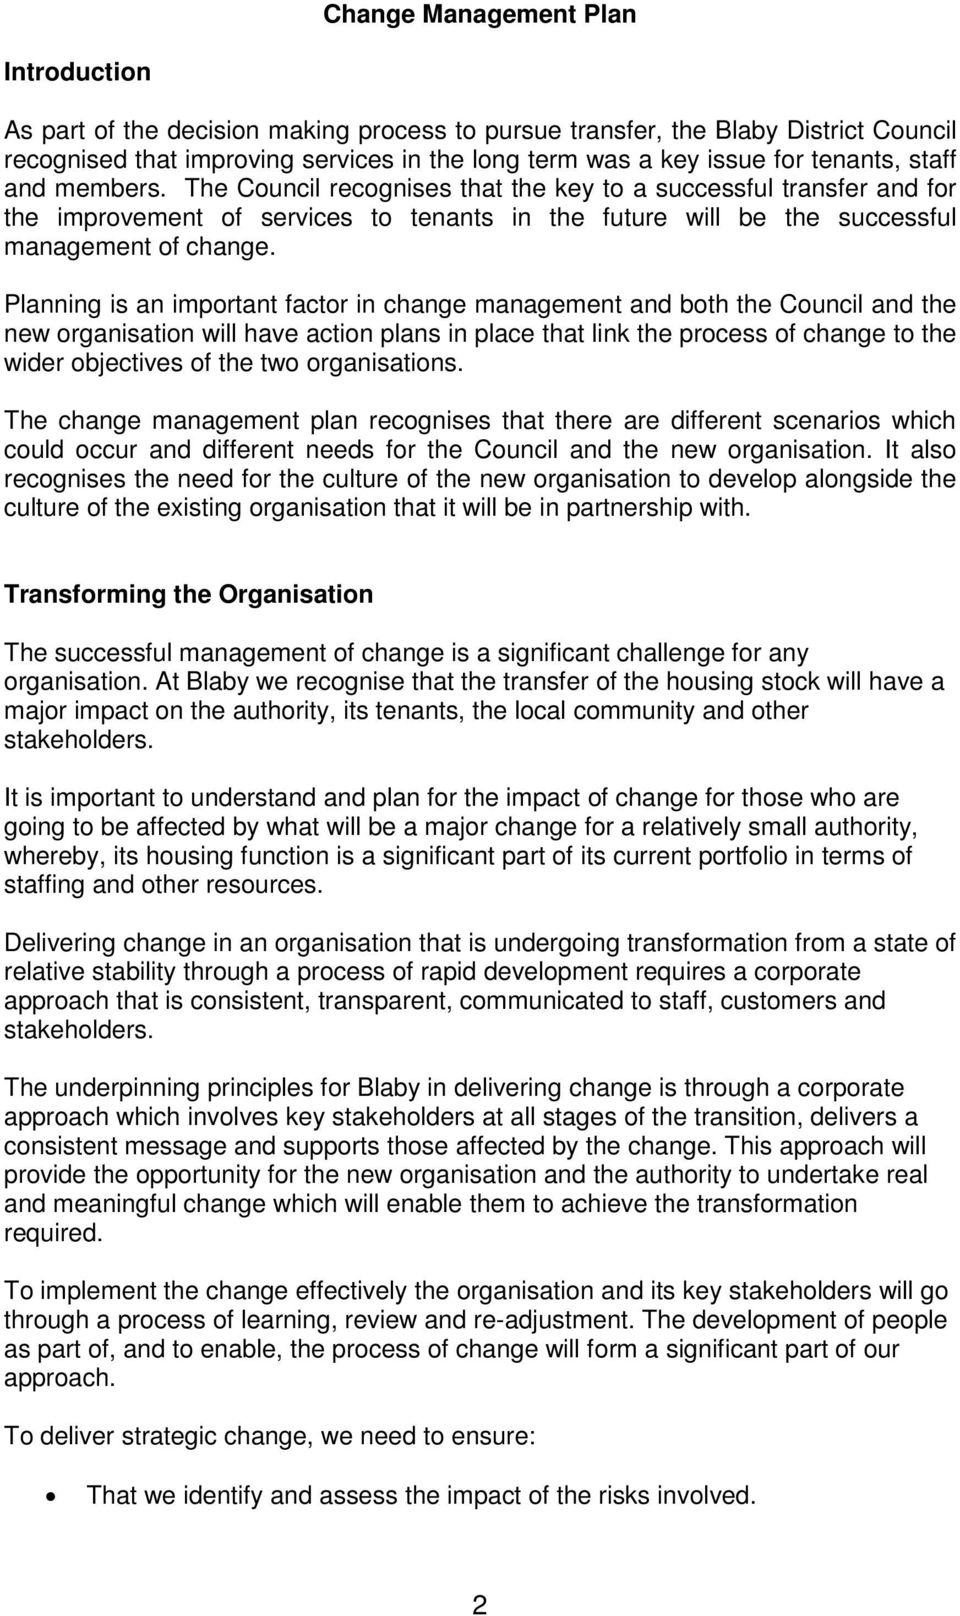 Planning is an important factor in change management and both the Council and the new organisation will have action plans in place that link the process of change to the wider objectives of the two